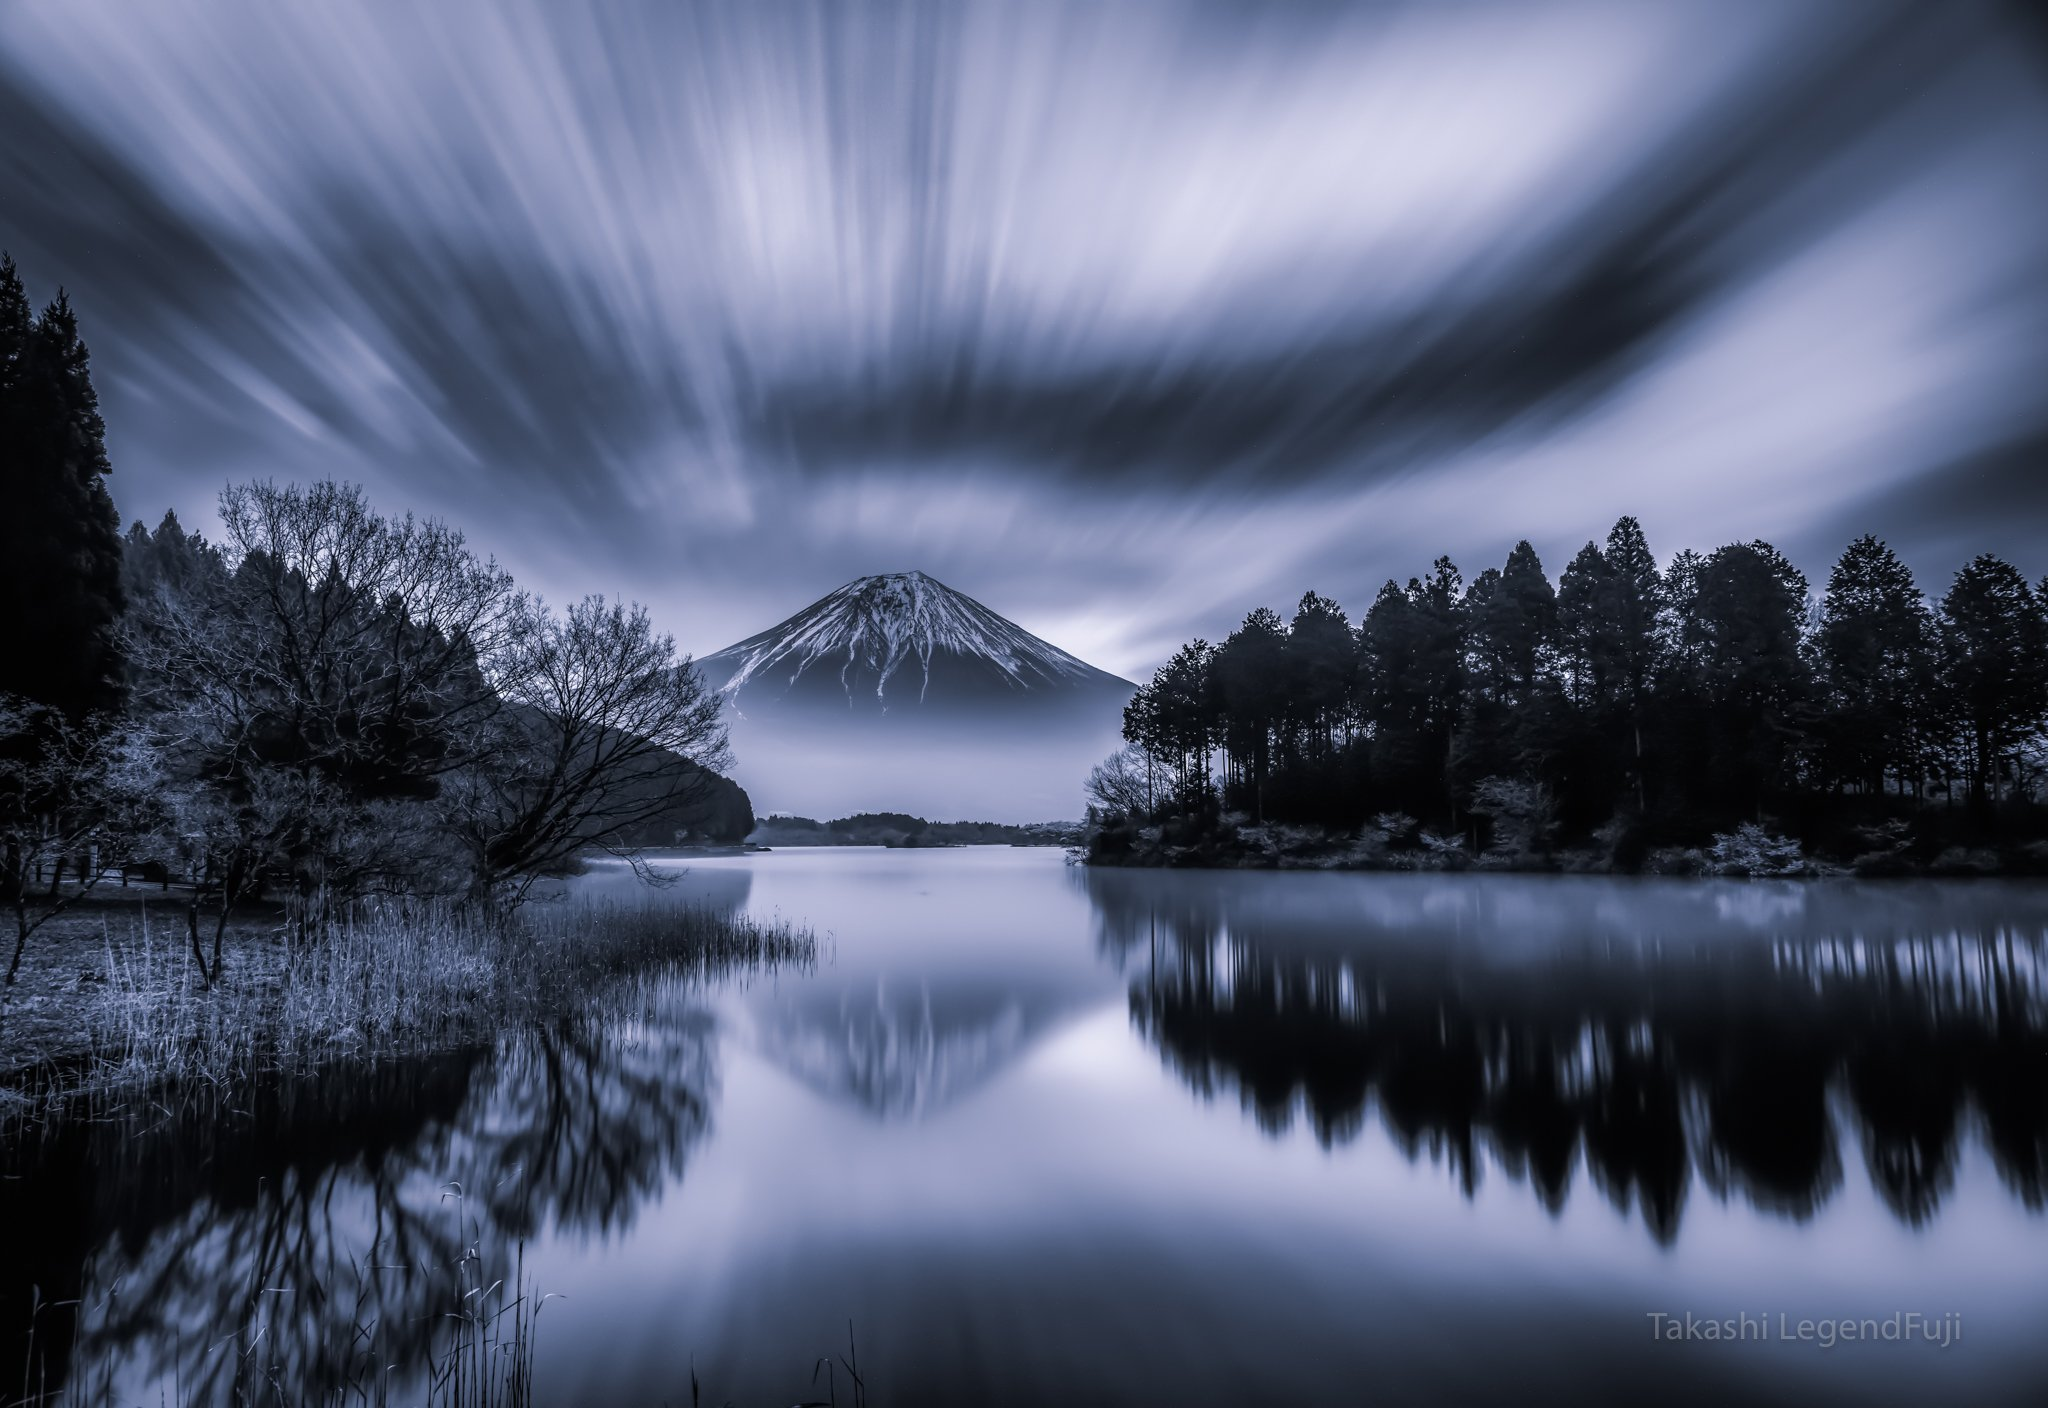 fuji,mountain,japan,clouds,lake,water,reflection,landscapes,trees,flow,mirror,amazing,beautiful,wonderful,, Takashi